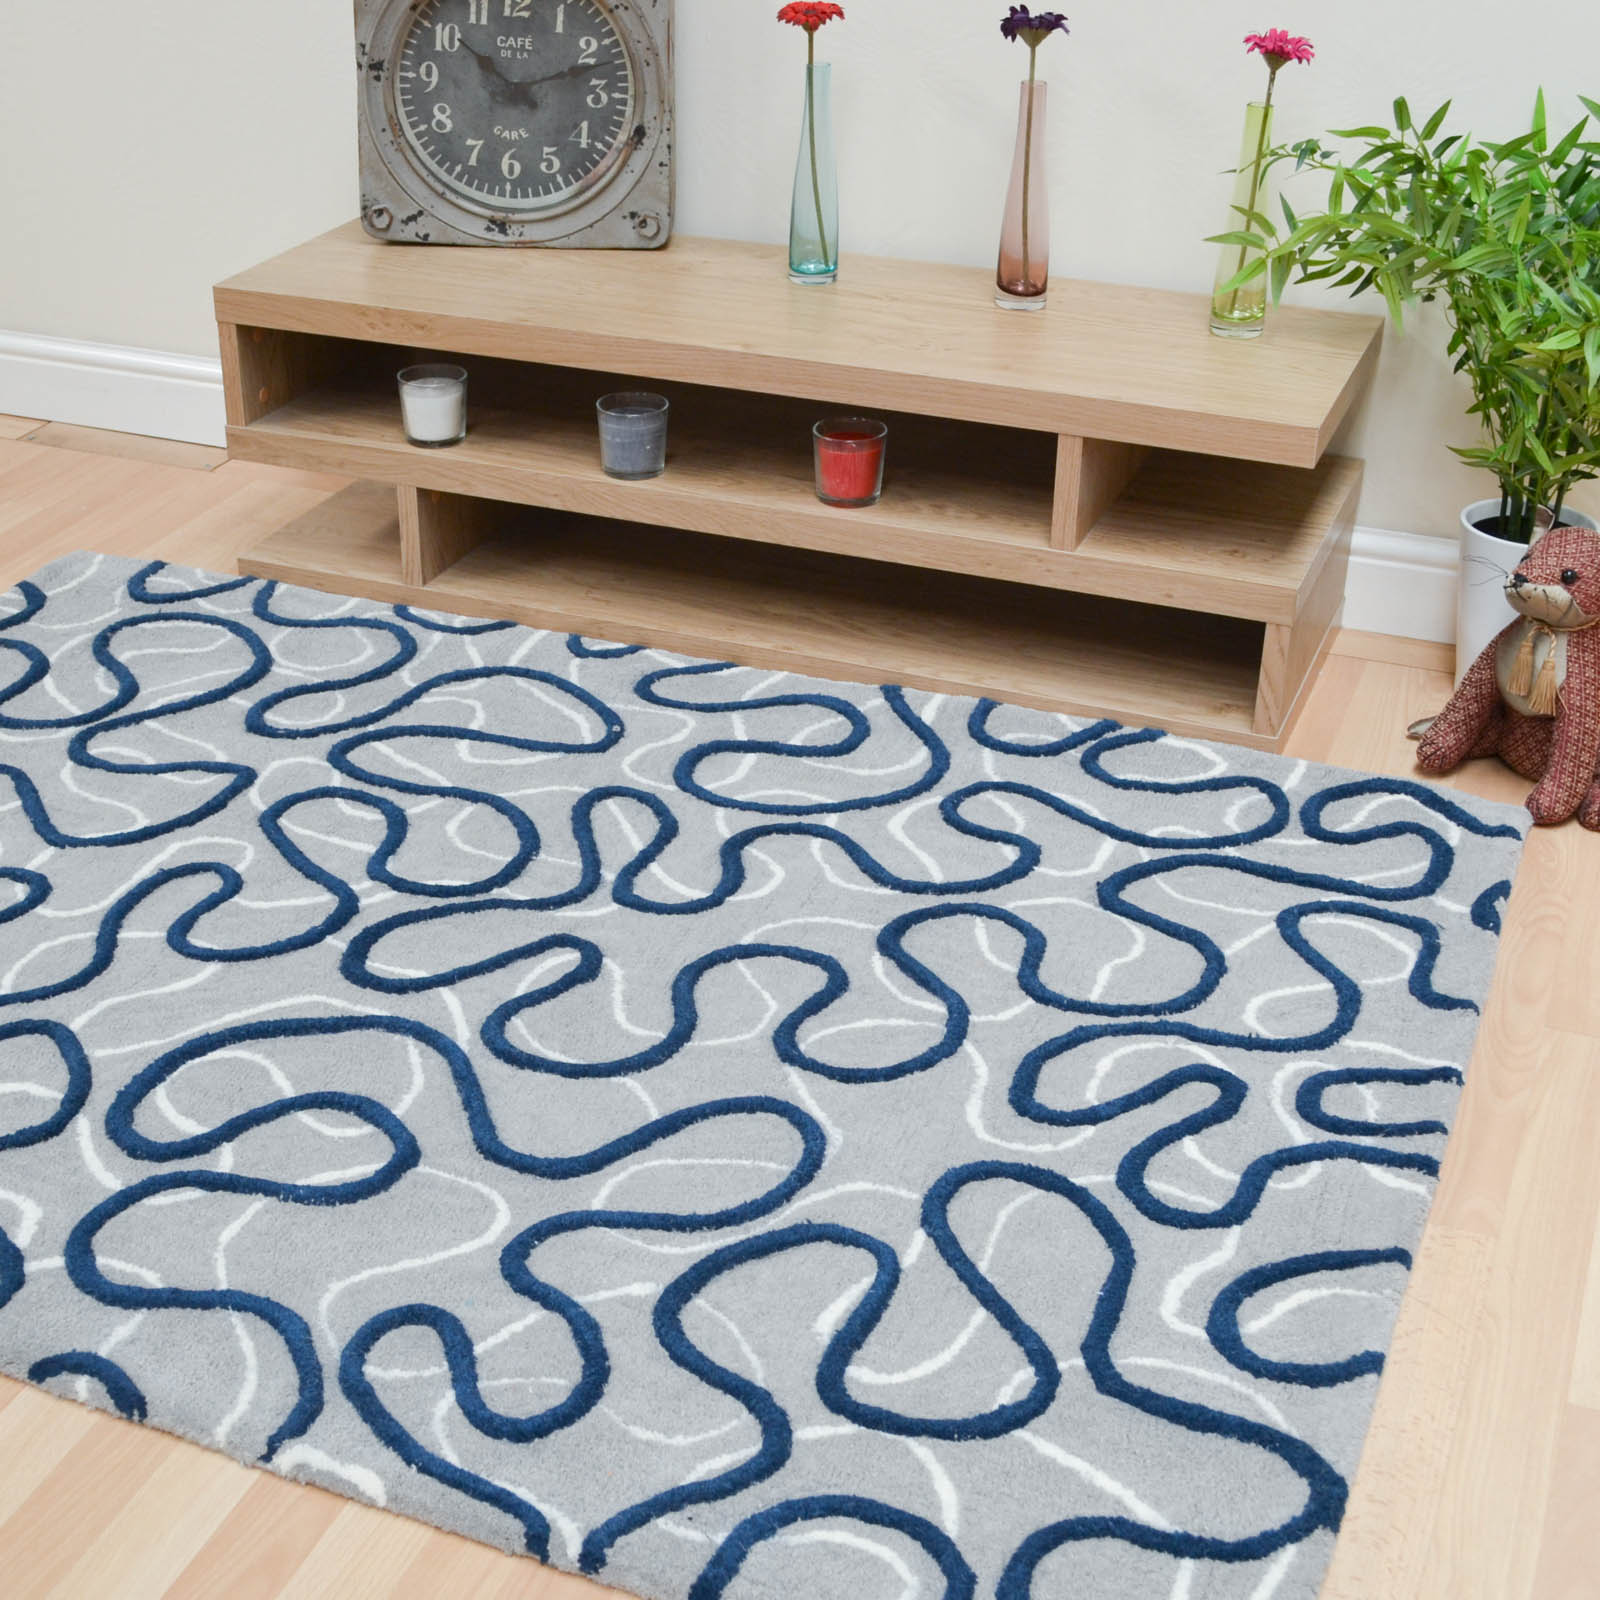 Squiggle Rugs in Blue